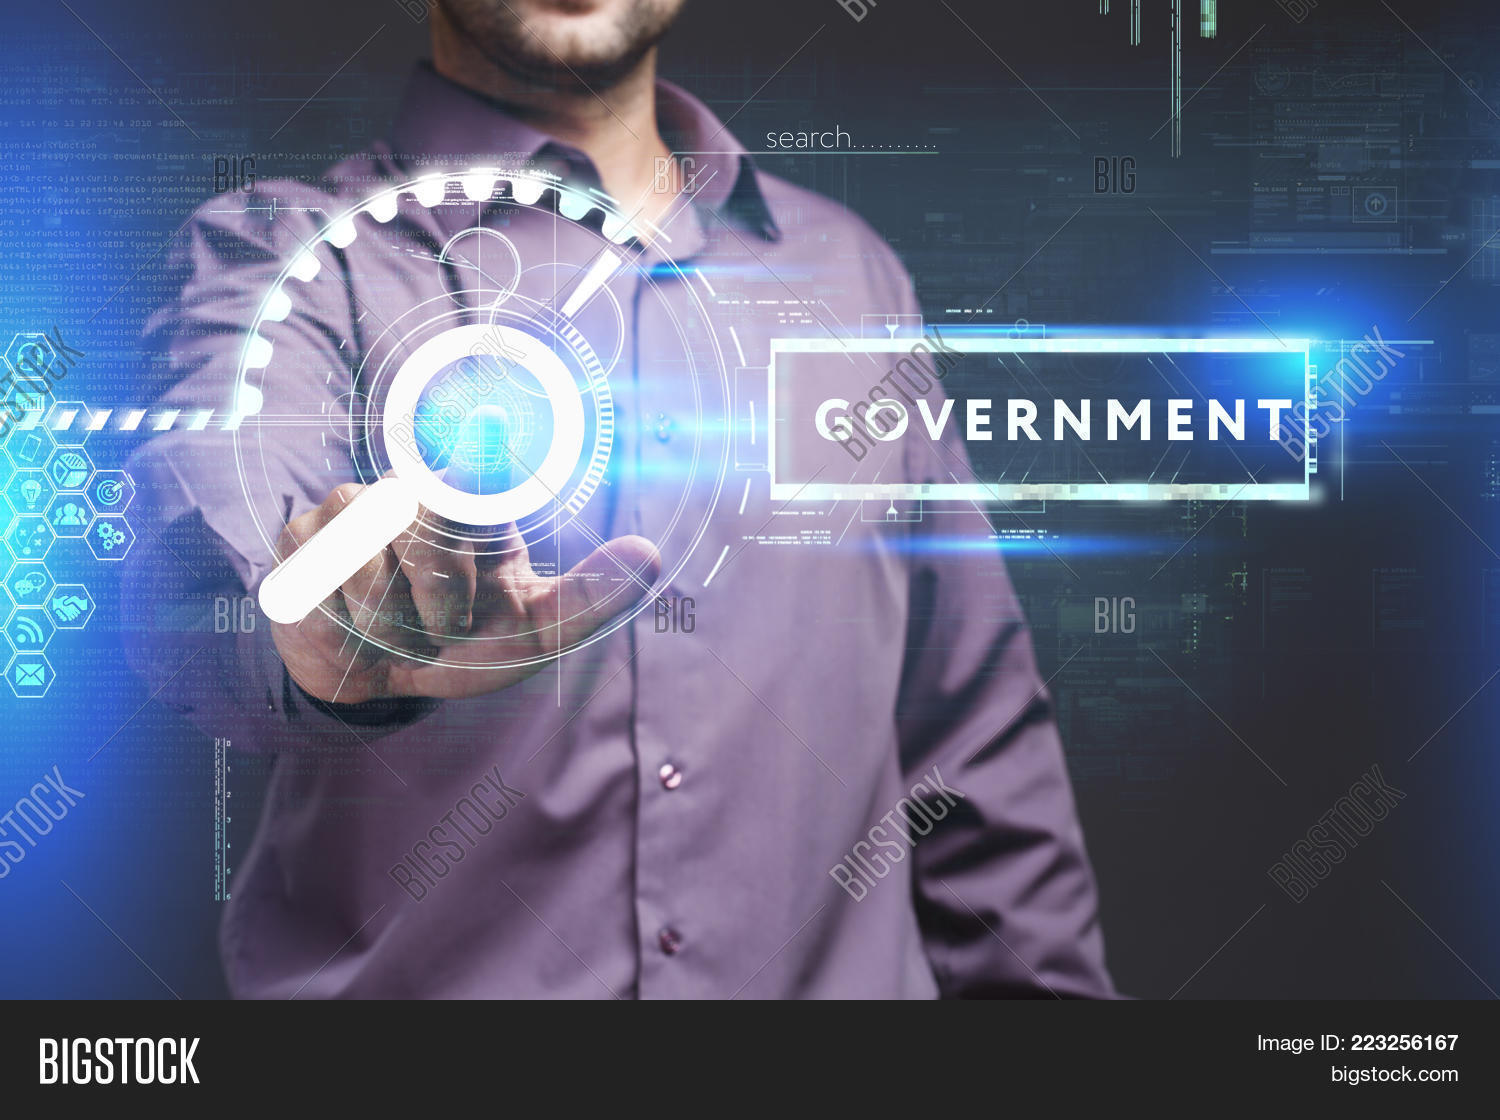 government powerpoint template government powerpoint background